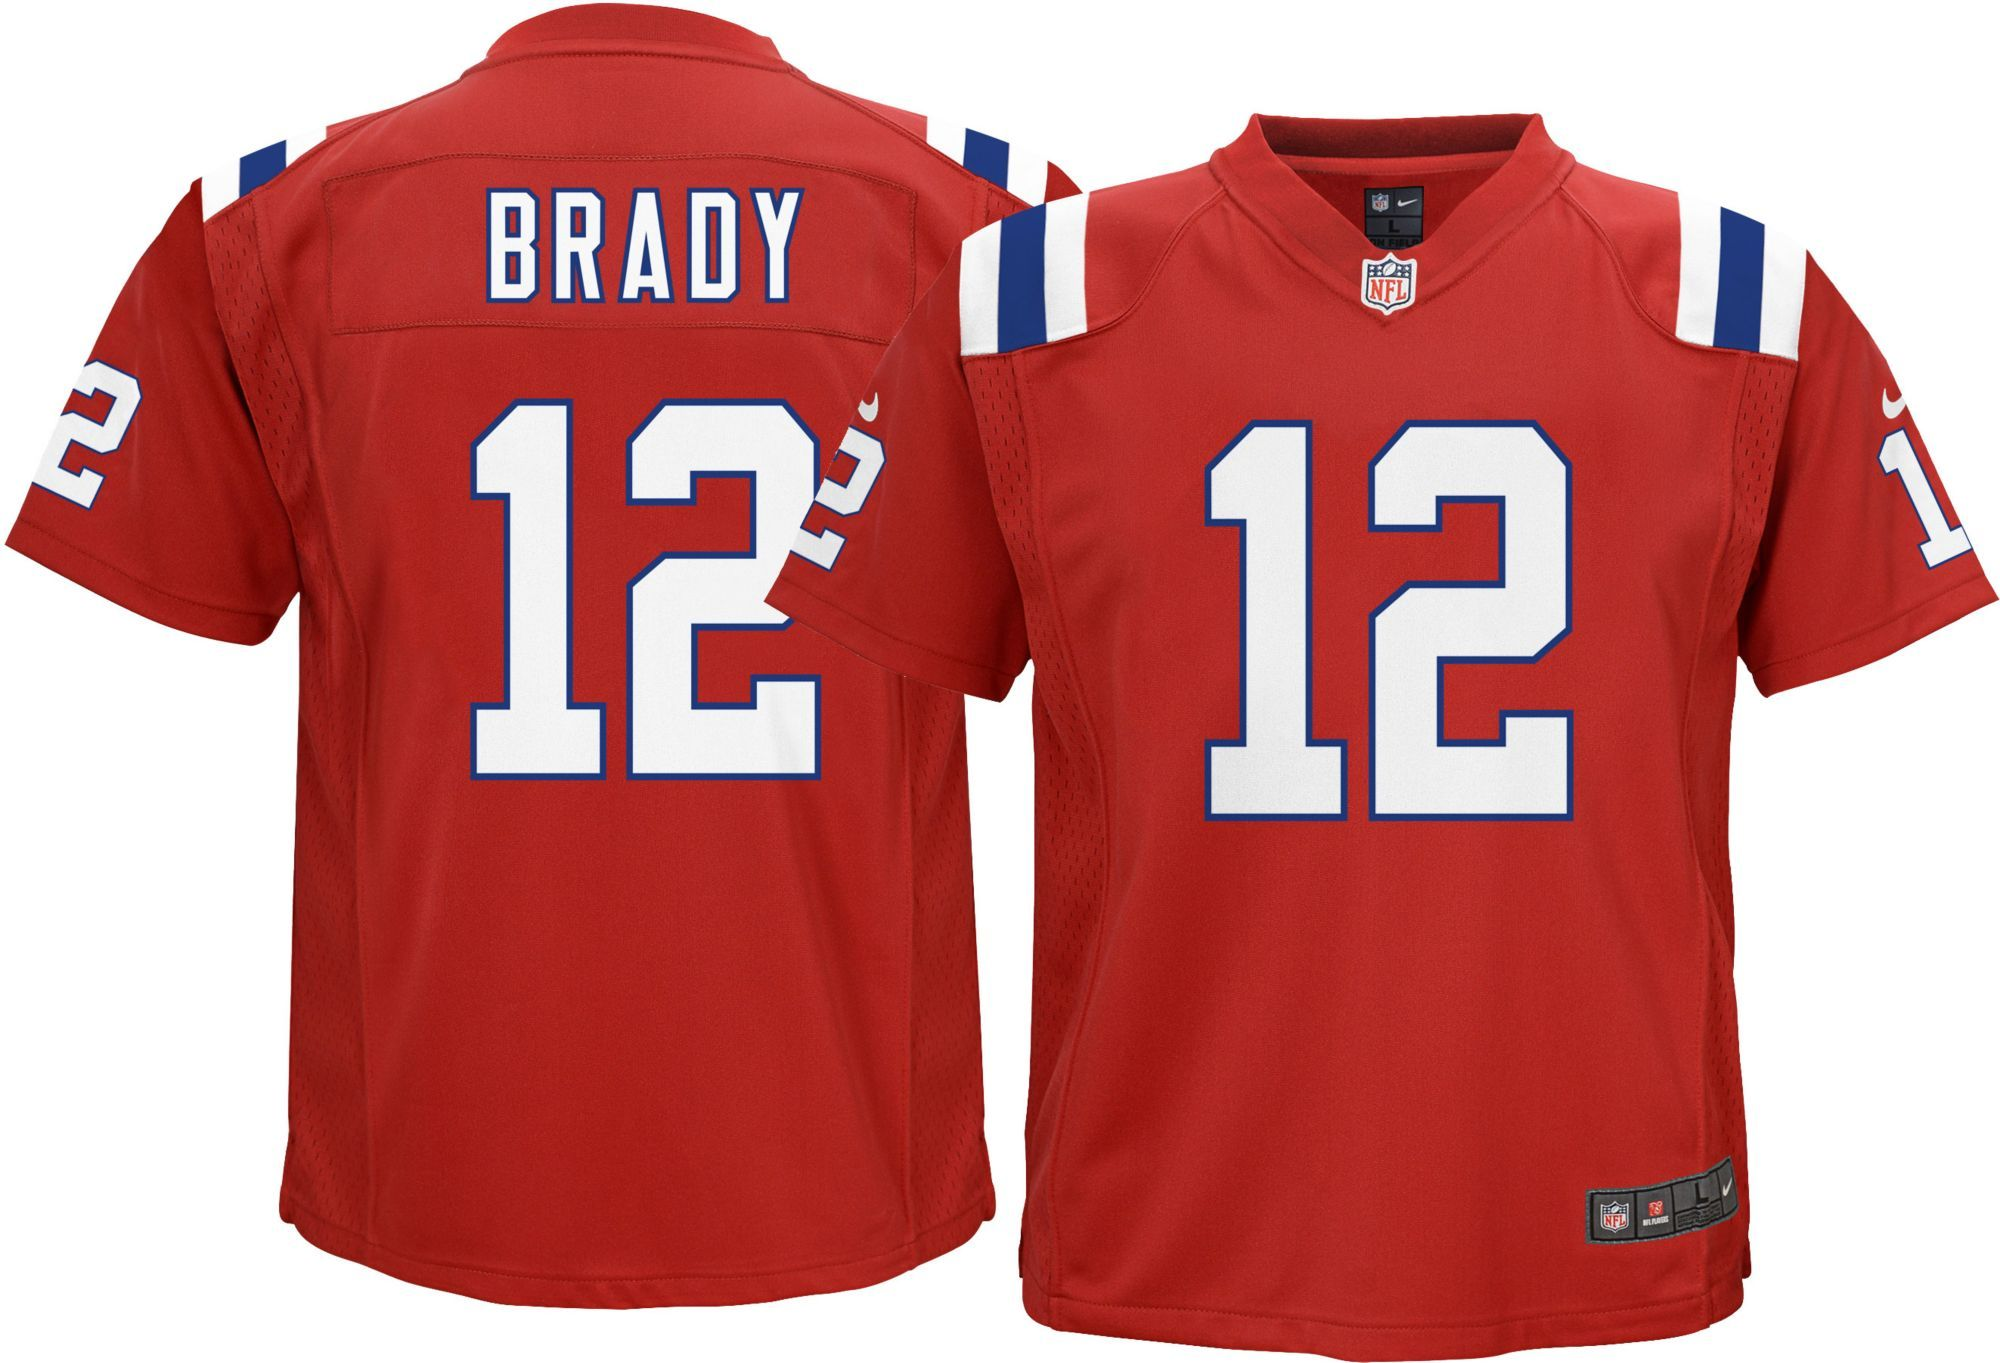 Tom Brady Tampa Bay Buccaneers #12 Red Kids 4-7 Home Game Day Jersey